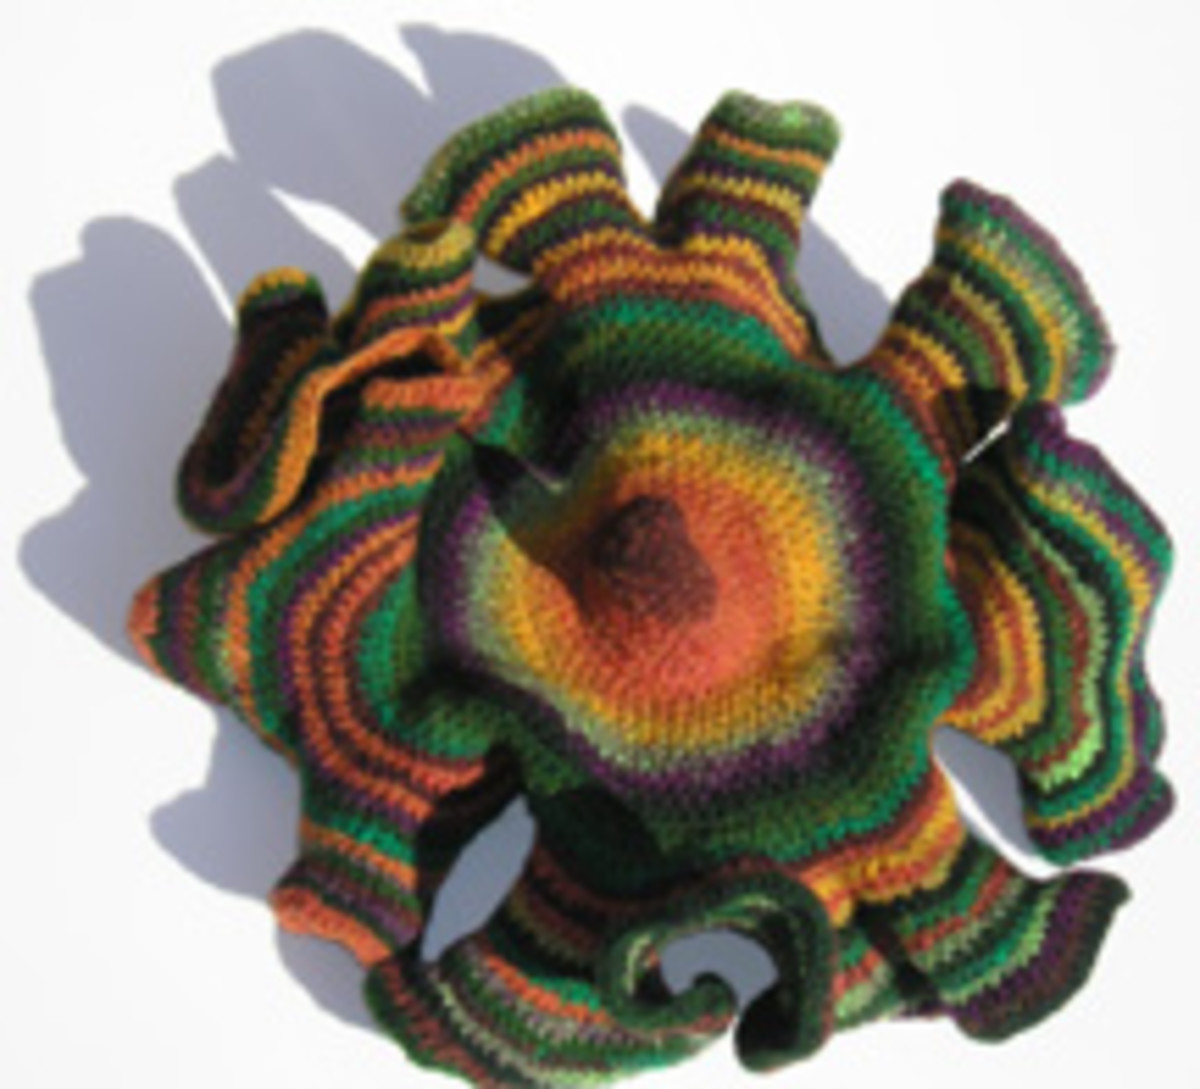 Hyperbolic geometry in crochet!